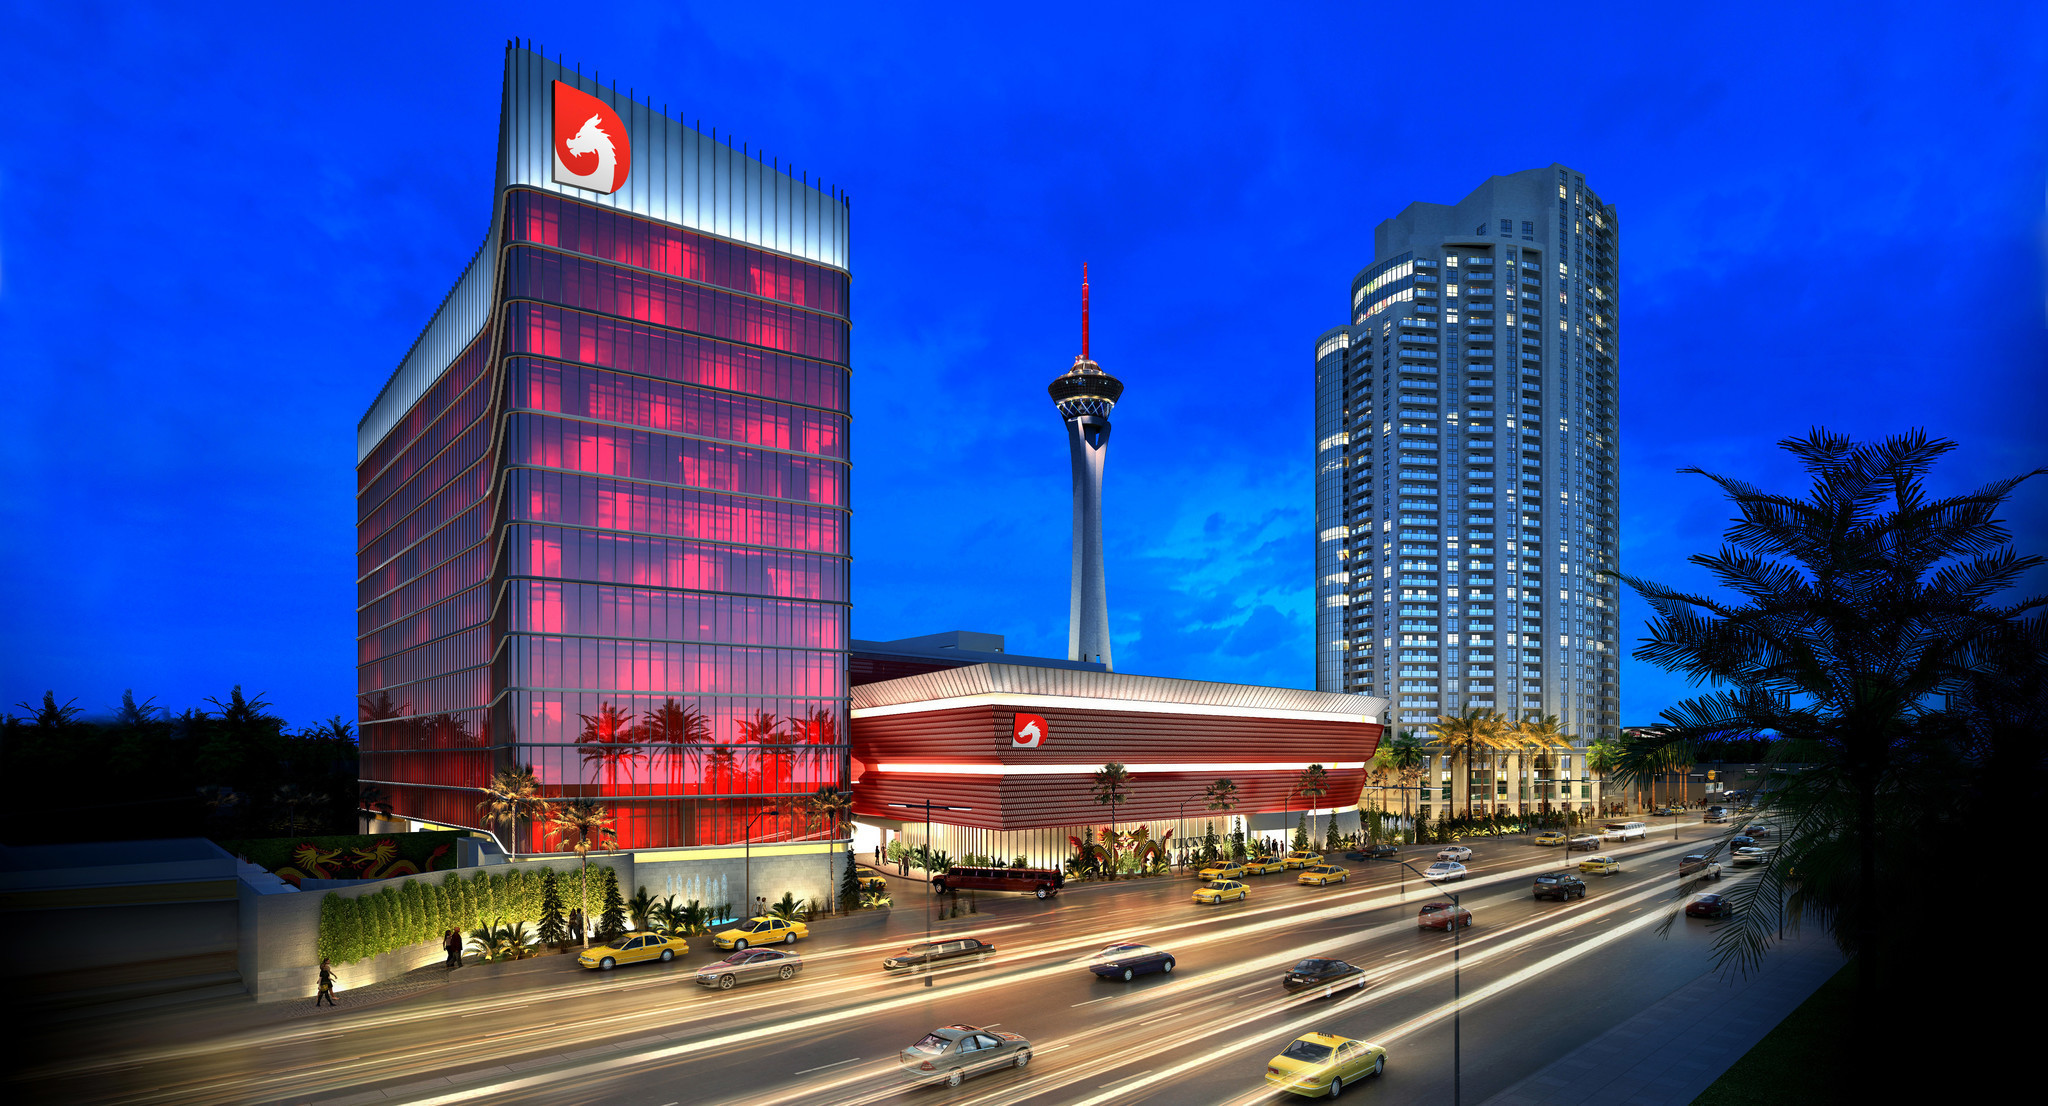 Visit modestokeetonl4jflm.gq to get the best rate on Las Vegas hotels guaranteed, find deals and save on Las Vegas show tickets, tours, clubs, attractions & more.